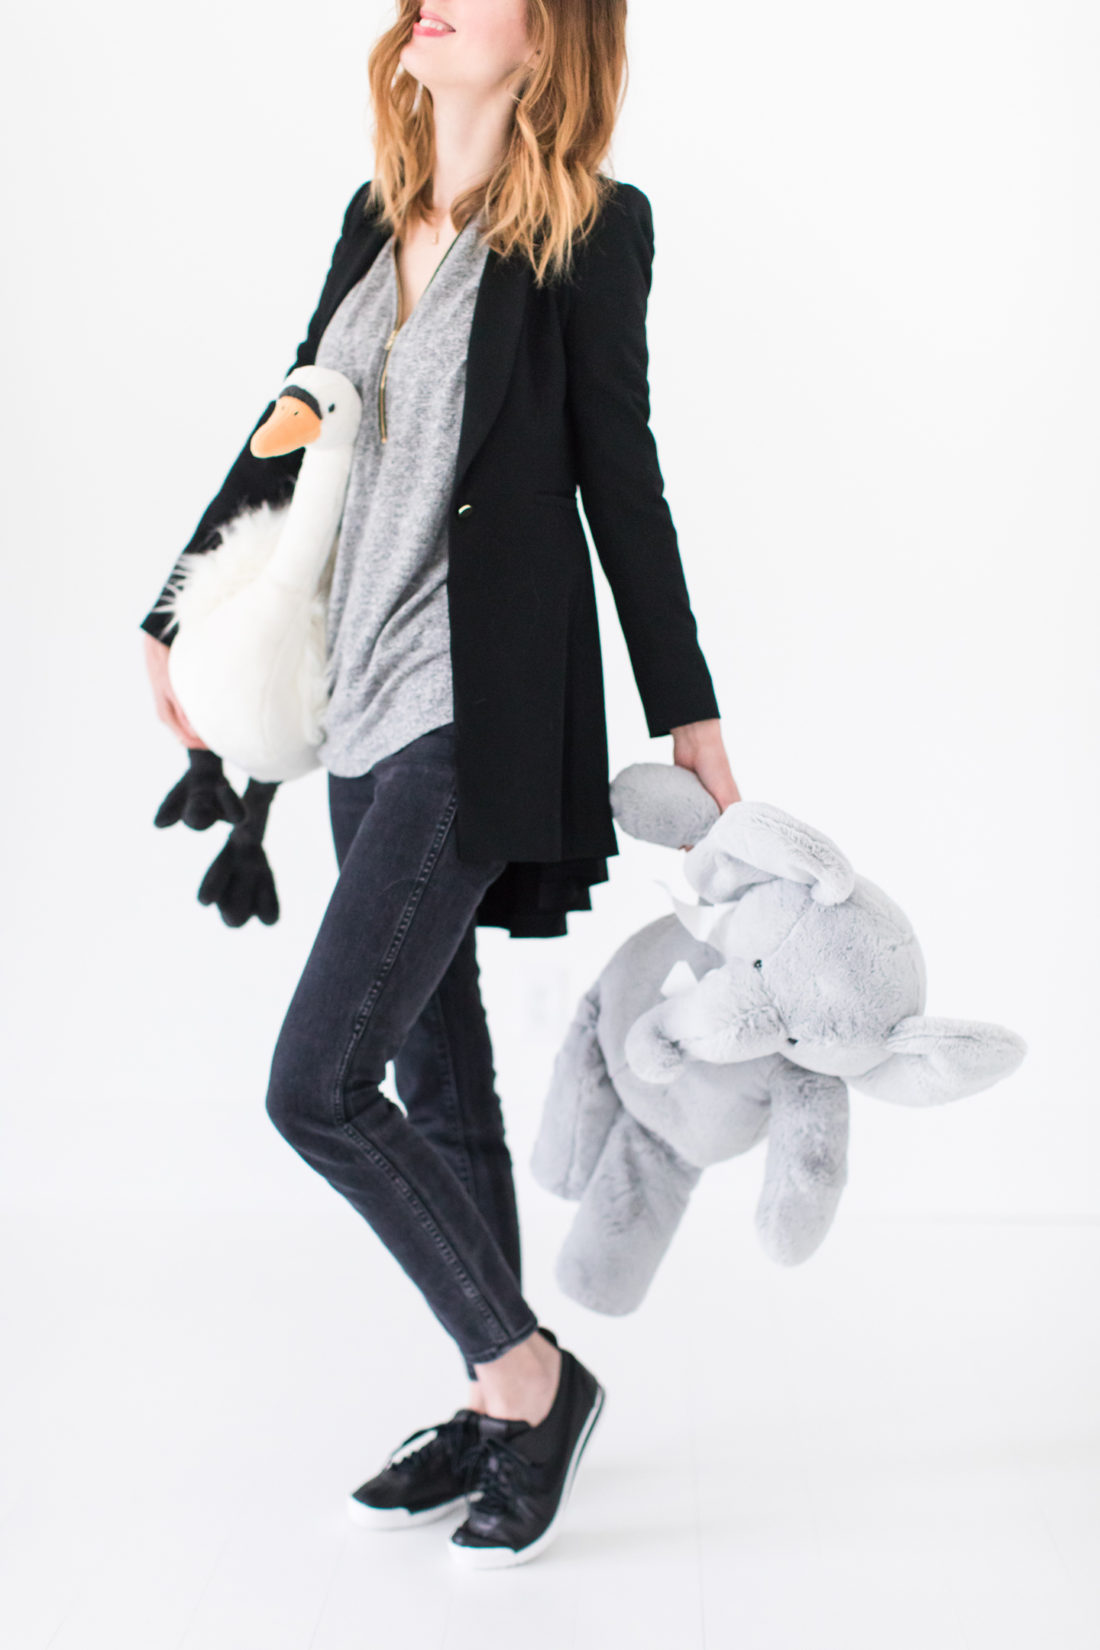 Eva Amurri Martino cleans up stuffed animals wearing a pair of high waisted jeans, a black blazer, and black leather sneakers